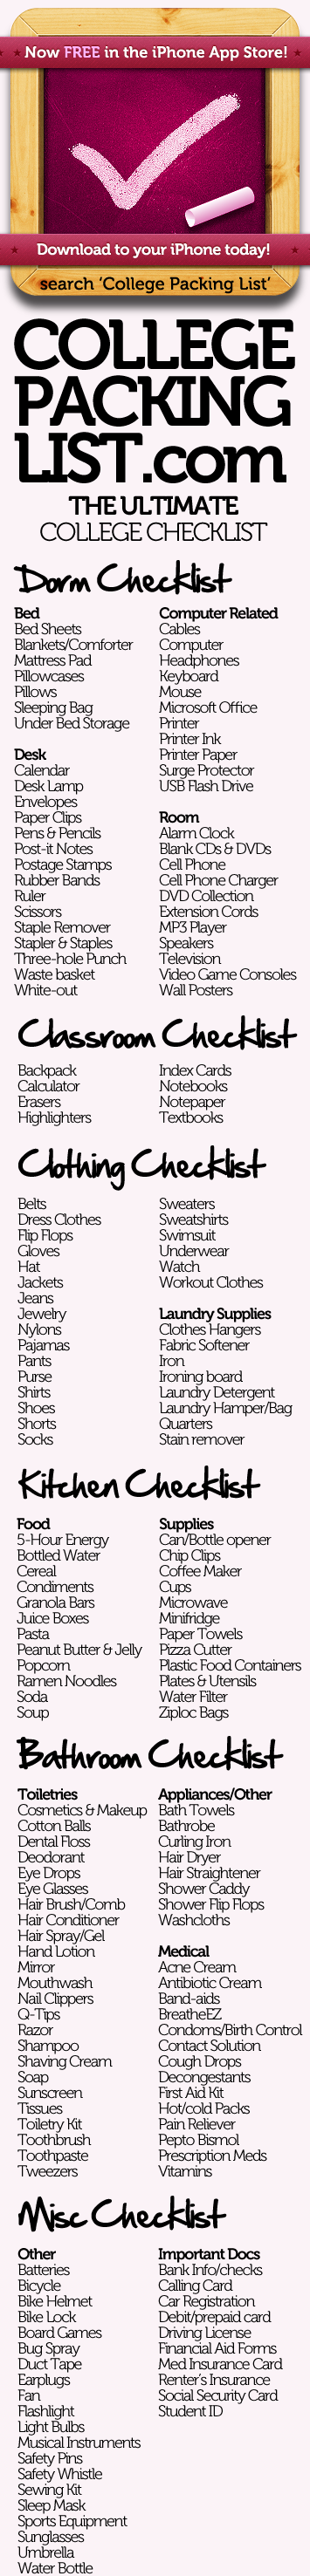 College Packing List Your College Checklist